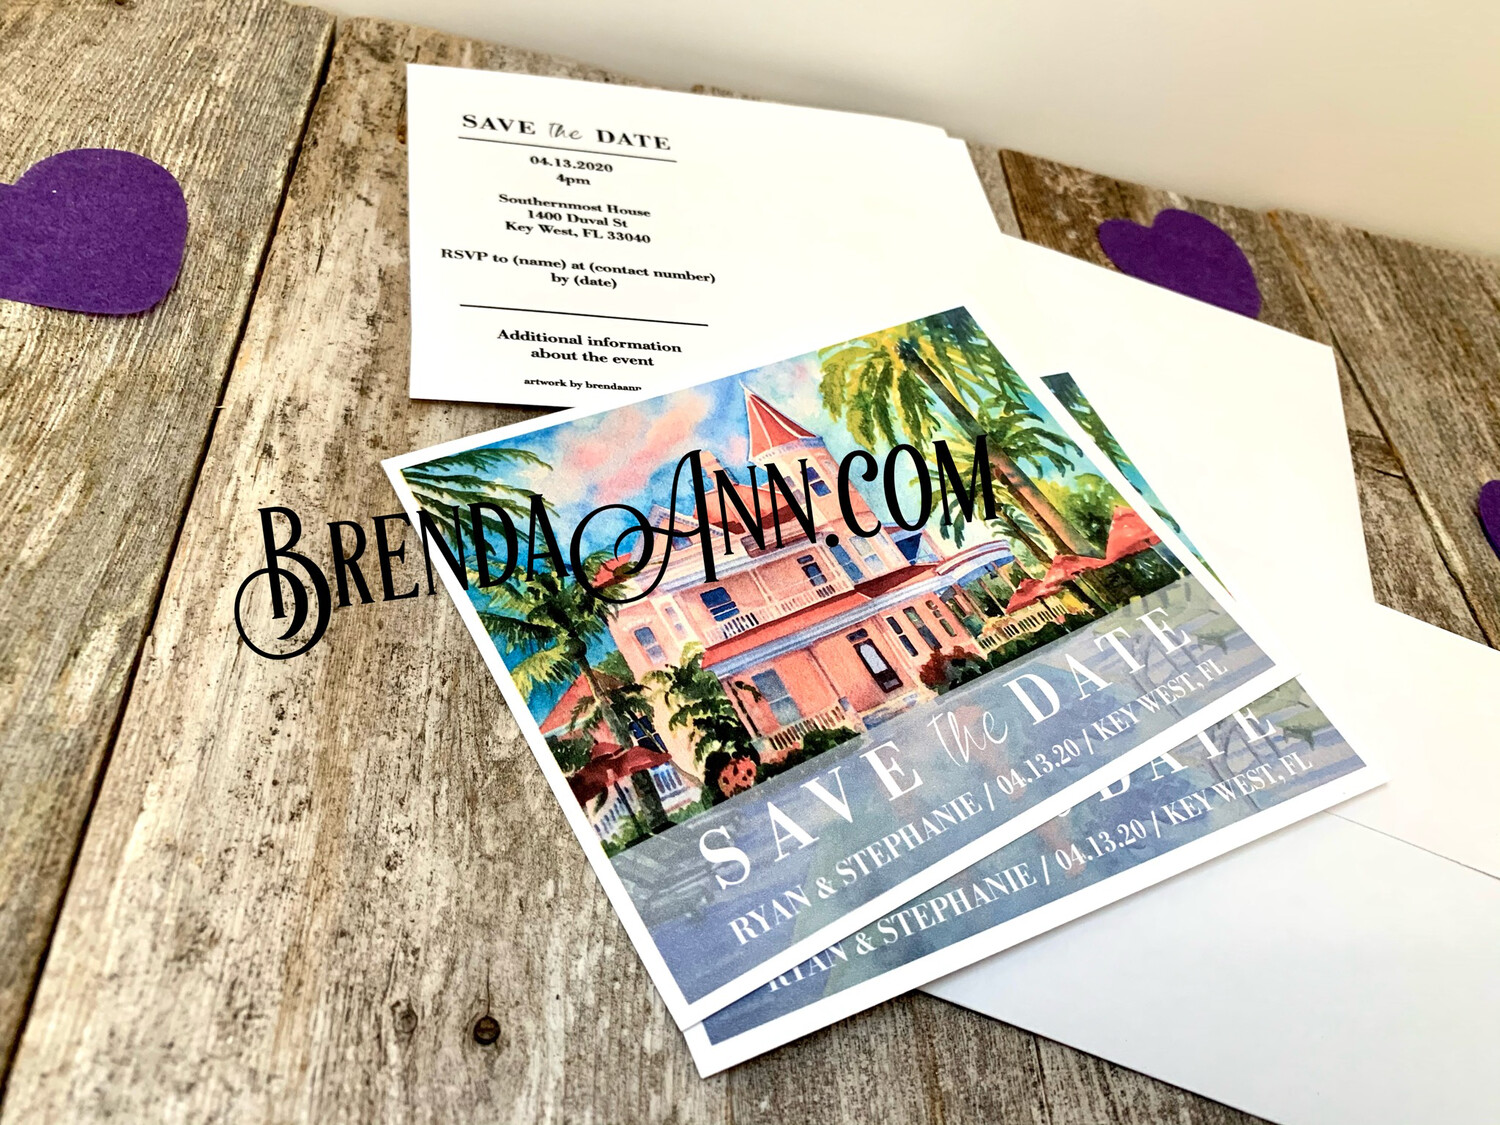 Wedding Save the Date Cards - Southernmost House in Key West FL - Watercolor by Brenda Ann